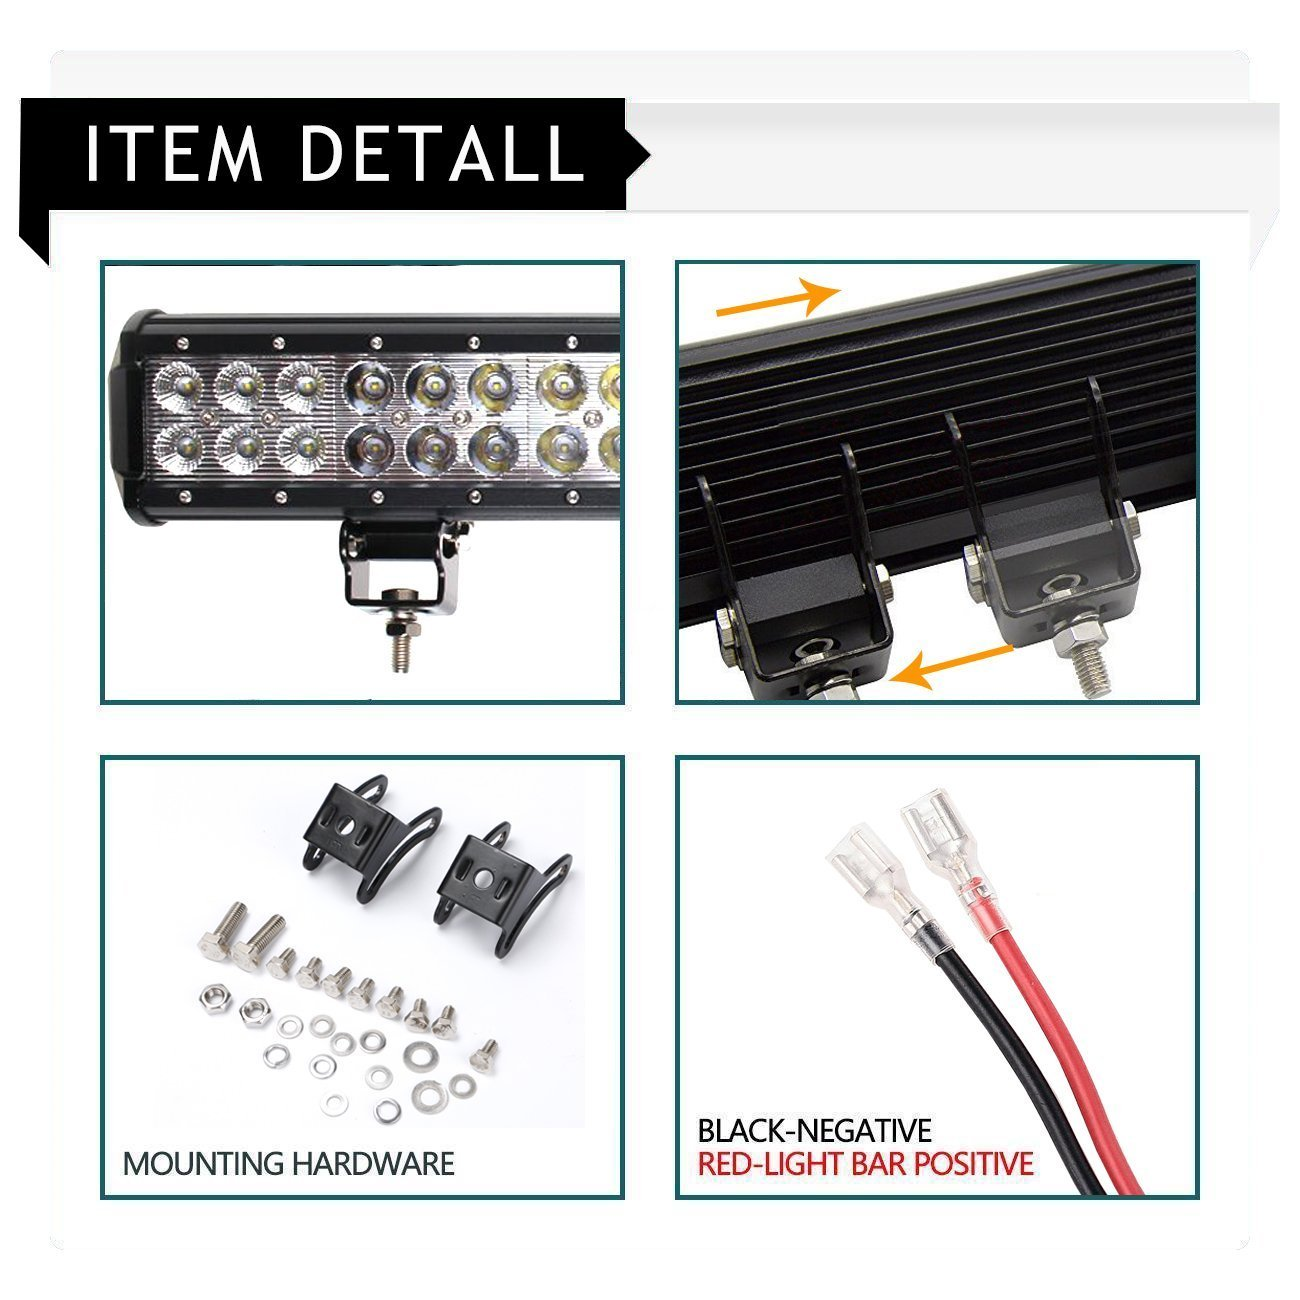 Dakride 234w 36 Inch Led Light Bar Offroad Spot Flood Jeep Liberty Wiring Harness Combo Beam W 3lead Kits Remote Control 2x 4 Pods Cube For Boat